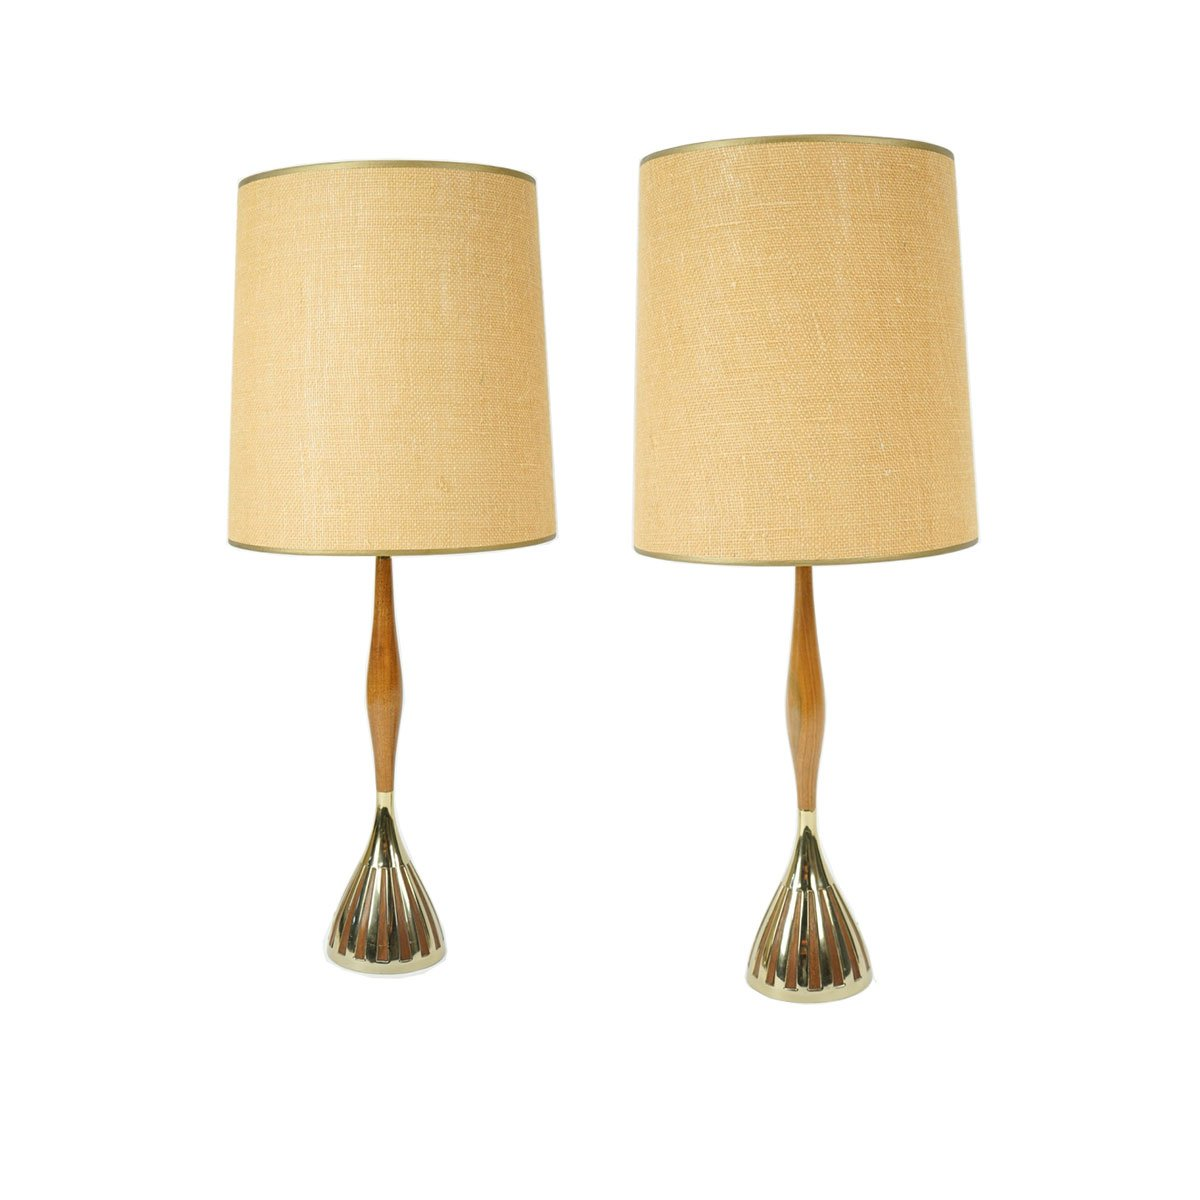 Pair of Slim Teak with Brass Table Lamps by Laurel